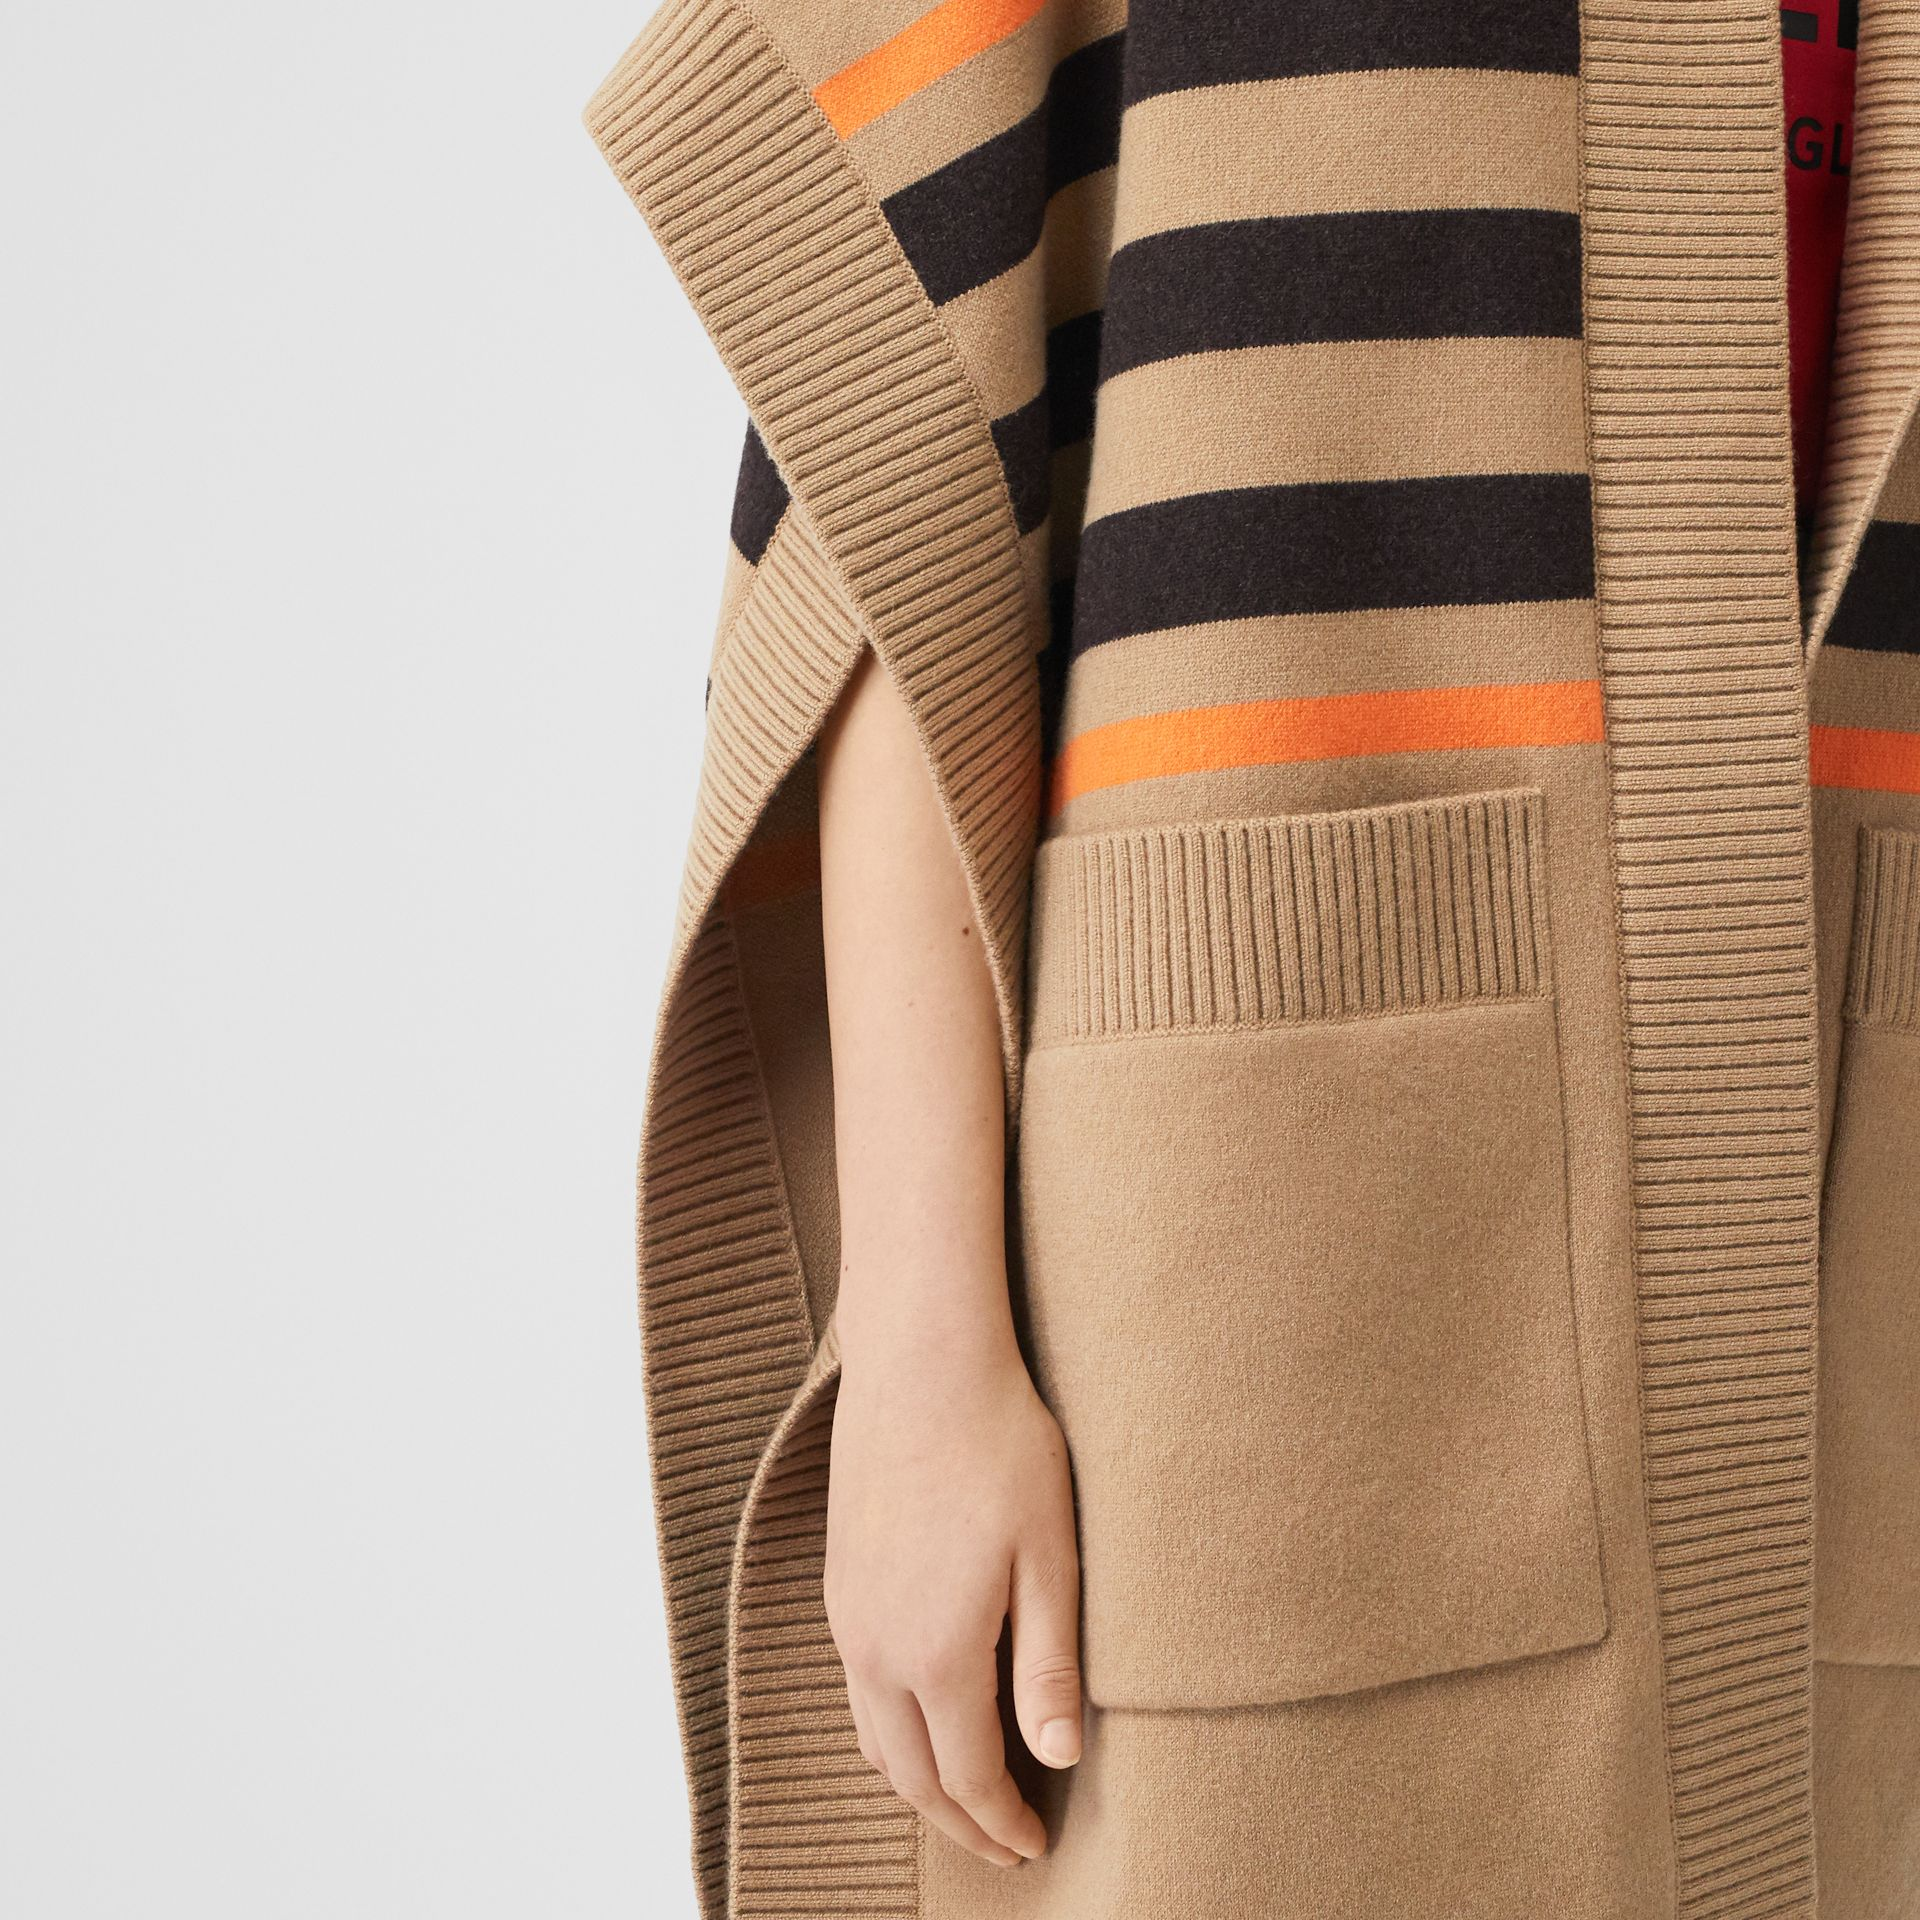 Monogram Motif Intarsia Wool Cashmere Blend Cape in Archive Beige - Women | Burberry Canada - gallery image 4